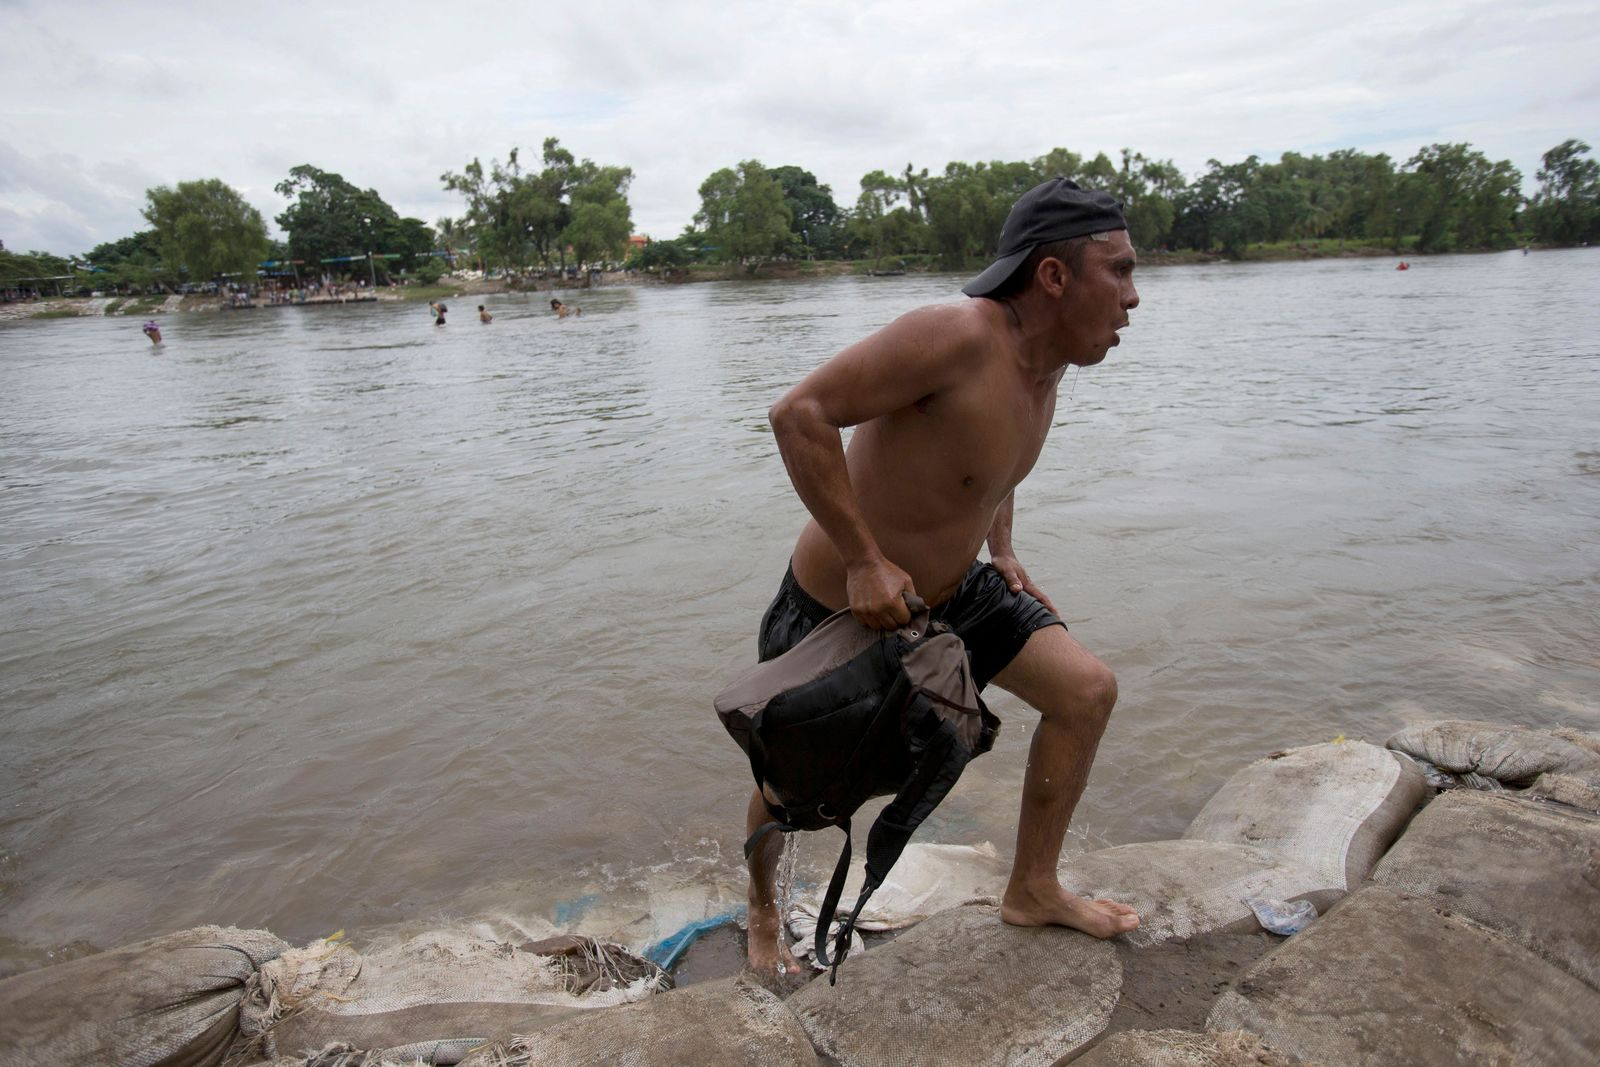 A Central American migrant walks off the shore on the Mexican side of the Suchiate River after wading across, on the the border between Guatemala and Mexico, in Ciudad Hidalgo, Mexico, Saturday, Oct. 20, 2018. (AP Photo/Moises Castillo)